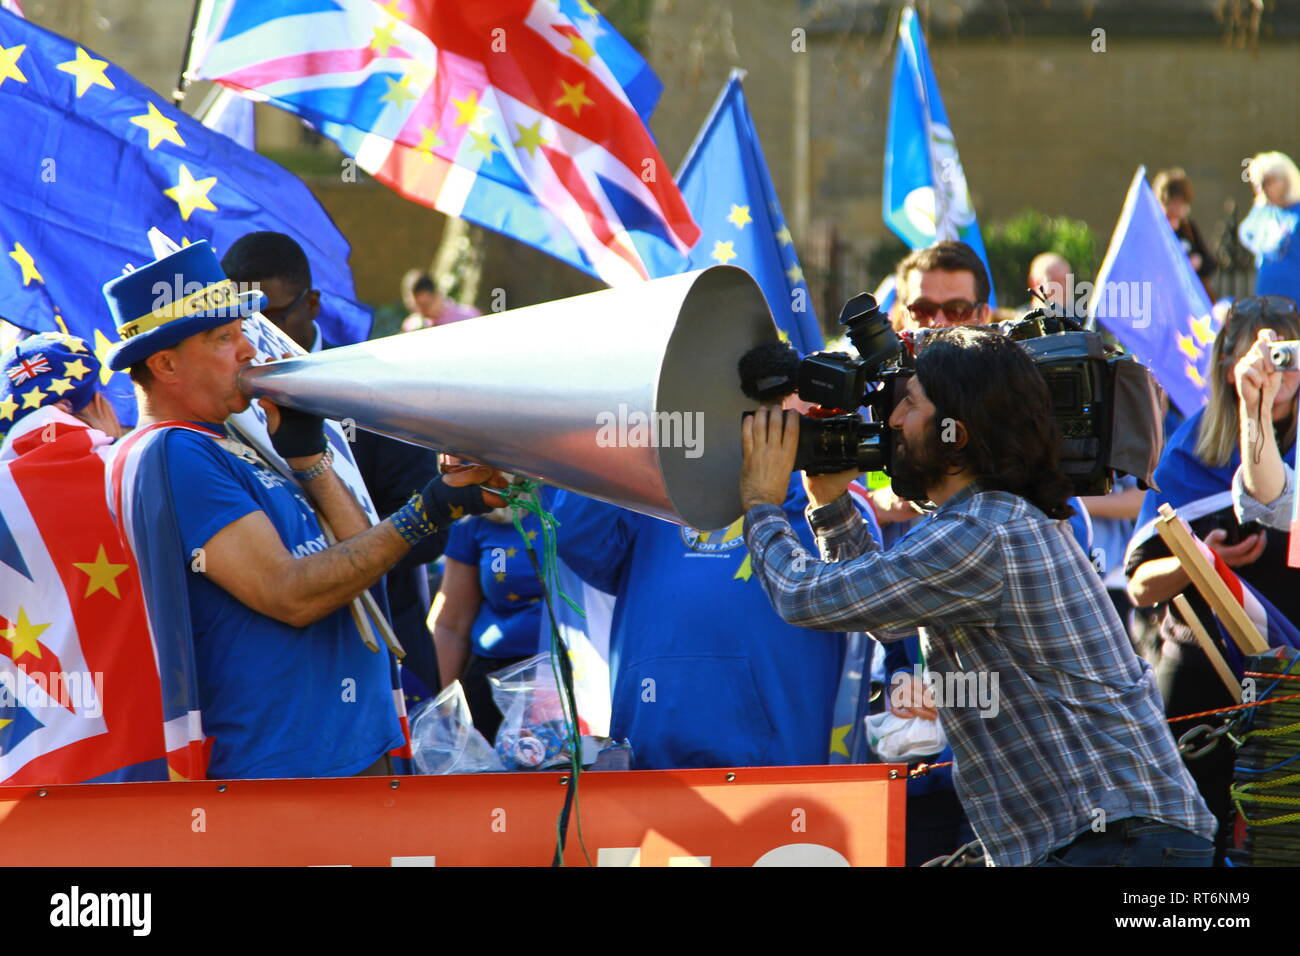 STOP BREXIT CAMPAIGNER STEVE BRAY SHOUTS STOP BREXIT THROUGH A MASSIVE LOUD SPEAKER AND A MOVIE CAMERA RECORDS THE EVENT AT THE SHARP END. PRO EUROPE. ANTI BREXIT. STOP BREXIT PROTEST OUTSIDE THE PALACE OF WESTMINSTER WITH STEVE BRAY TAKING A DEDICATED PASSIONATE LEADING ROLE. AND GOOD FOR HIM. Stock Photo